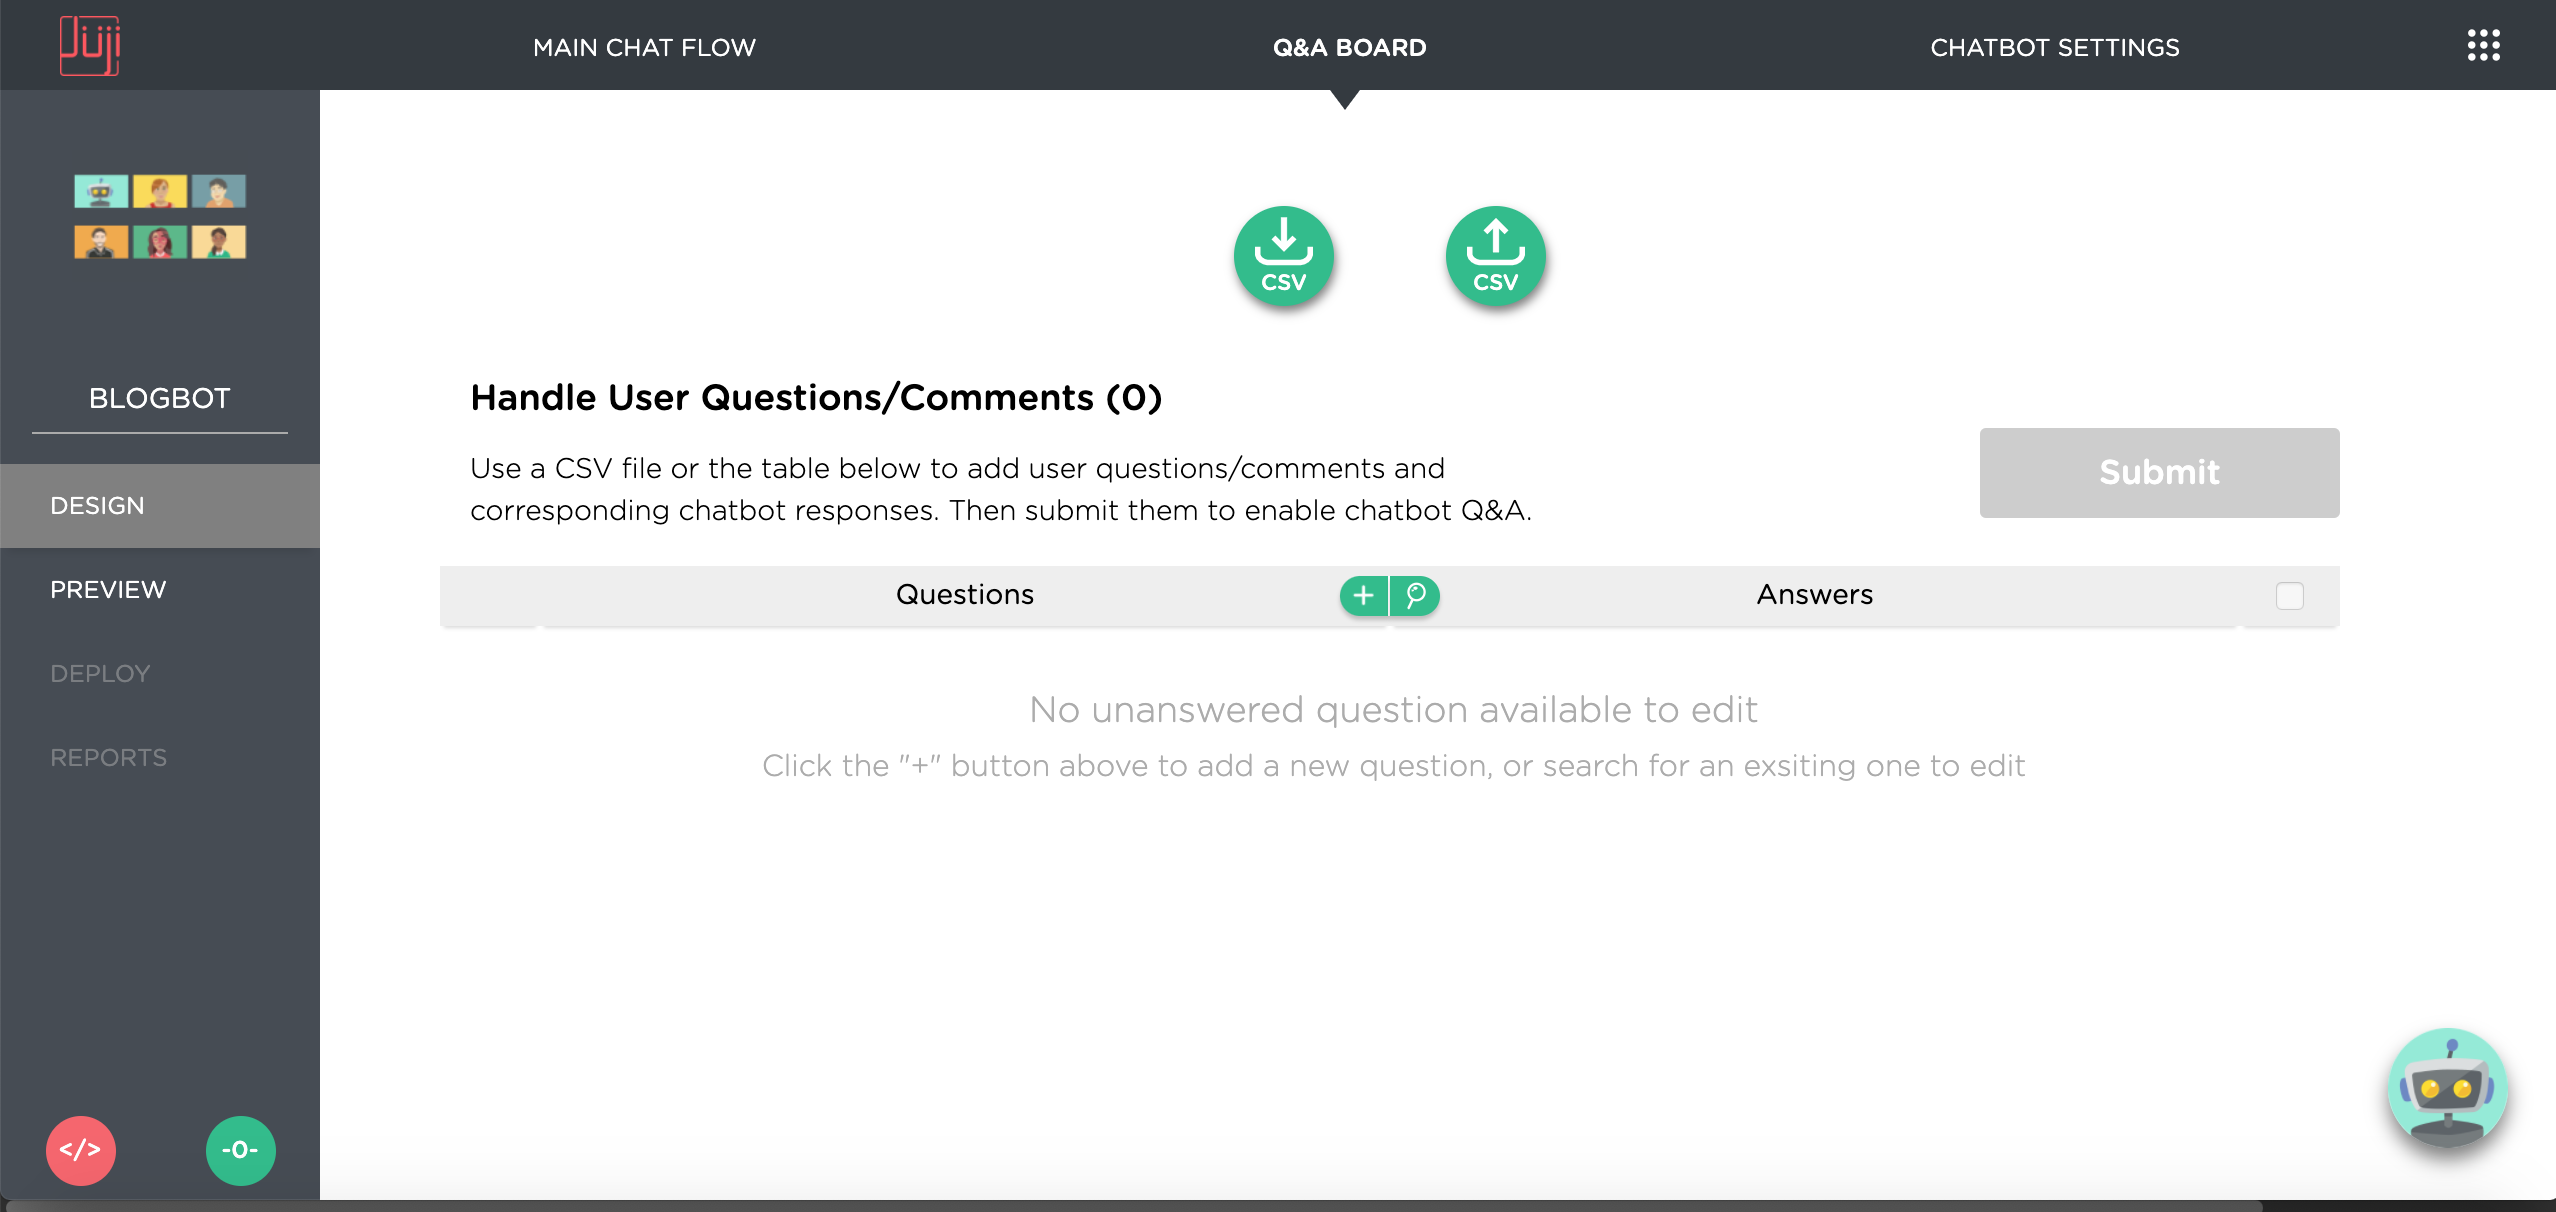 On the Q&A Board, you can use the CSV download and upload buttons to download and upload CSV file. You can also directly add or edit Q&As in the displayed table.